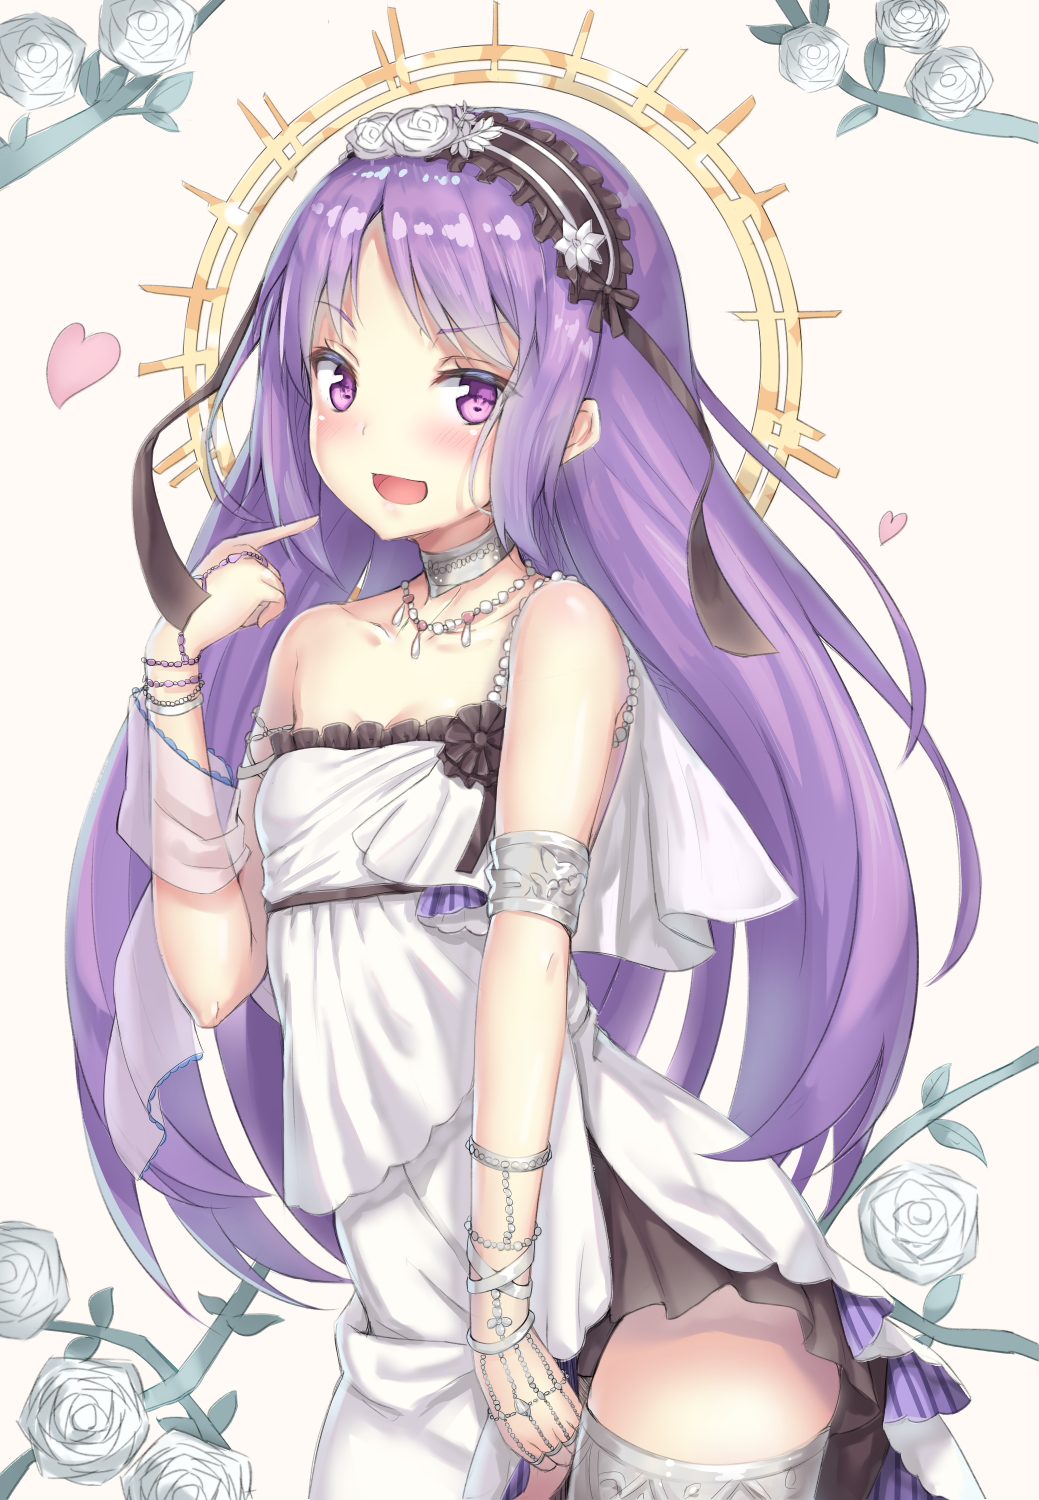 1girl :d alternate_hairstyle armlet bangs bare_shoulders black_panties collar collarbone cowboy_shot dress euryale eyebrows_visible_through_hair fate/hollow_ataraxia fate_(series) floral_background hair_down headdress heart highres index_finger_raised jewelry leaning_forward long_hair looking_at_viewer necklace open_mouth panties plant pointing pointing_at_self purple_hair reinama sidelocks smile solo thighlet tsurime underwear vines violet_eyes white_dress